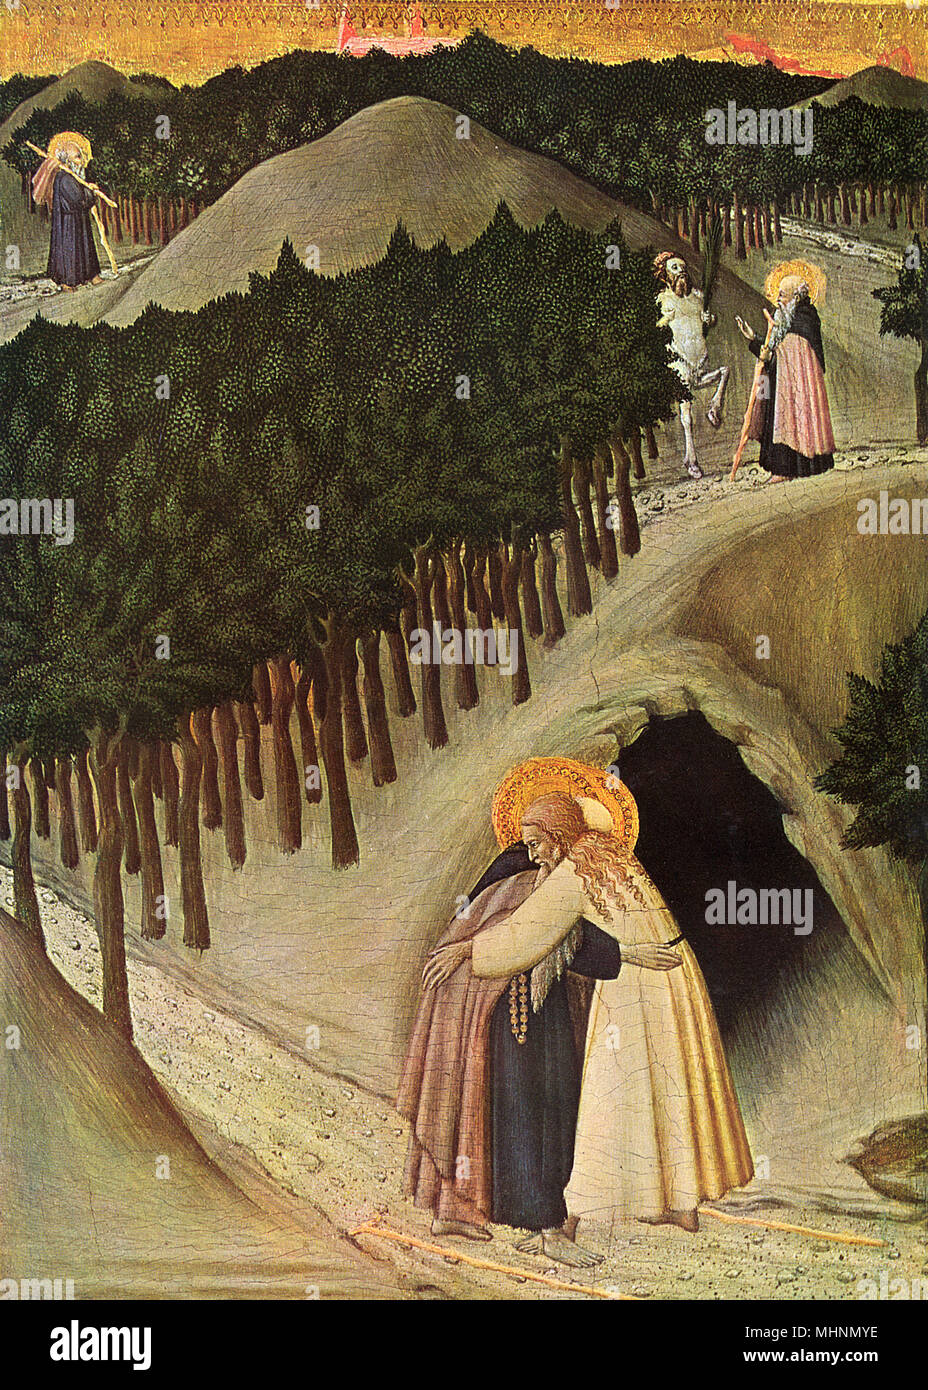 The Meeting of St. Anthony and St. Paul by Sassetta (1392-1450) - Sienese - painted on wood panel     Date: circa 1450 - Stock Image